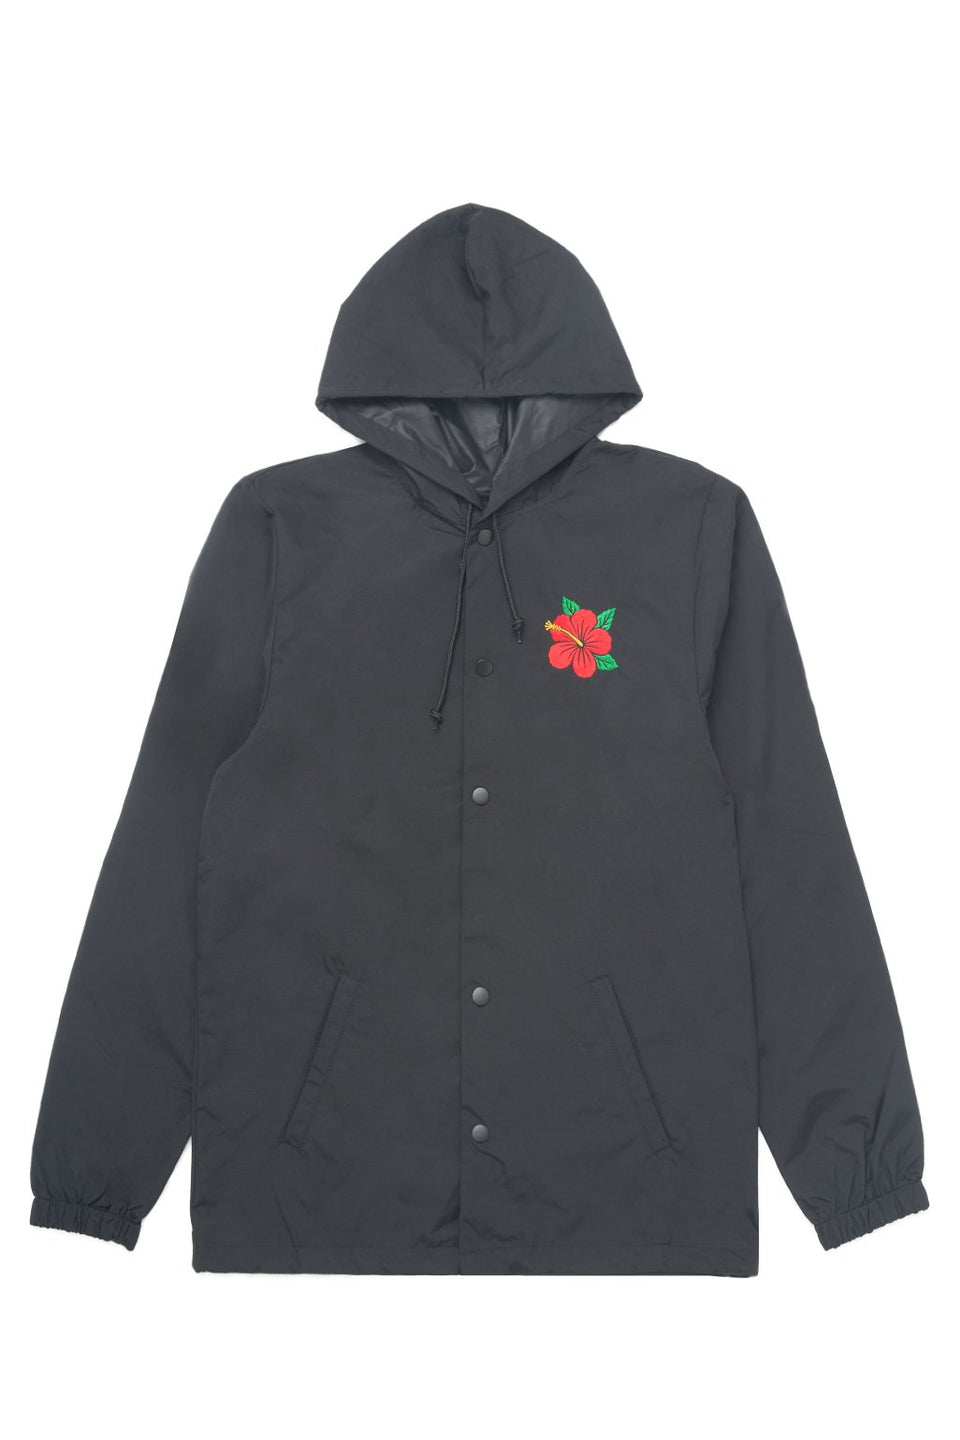 Hibiscus Hooded Coach's Jacket